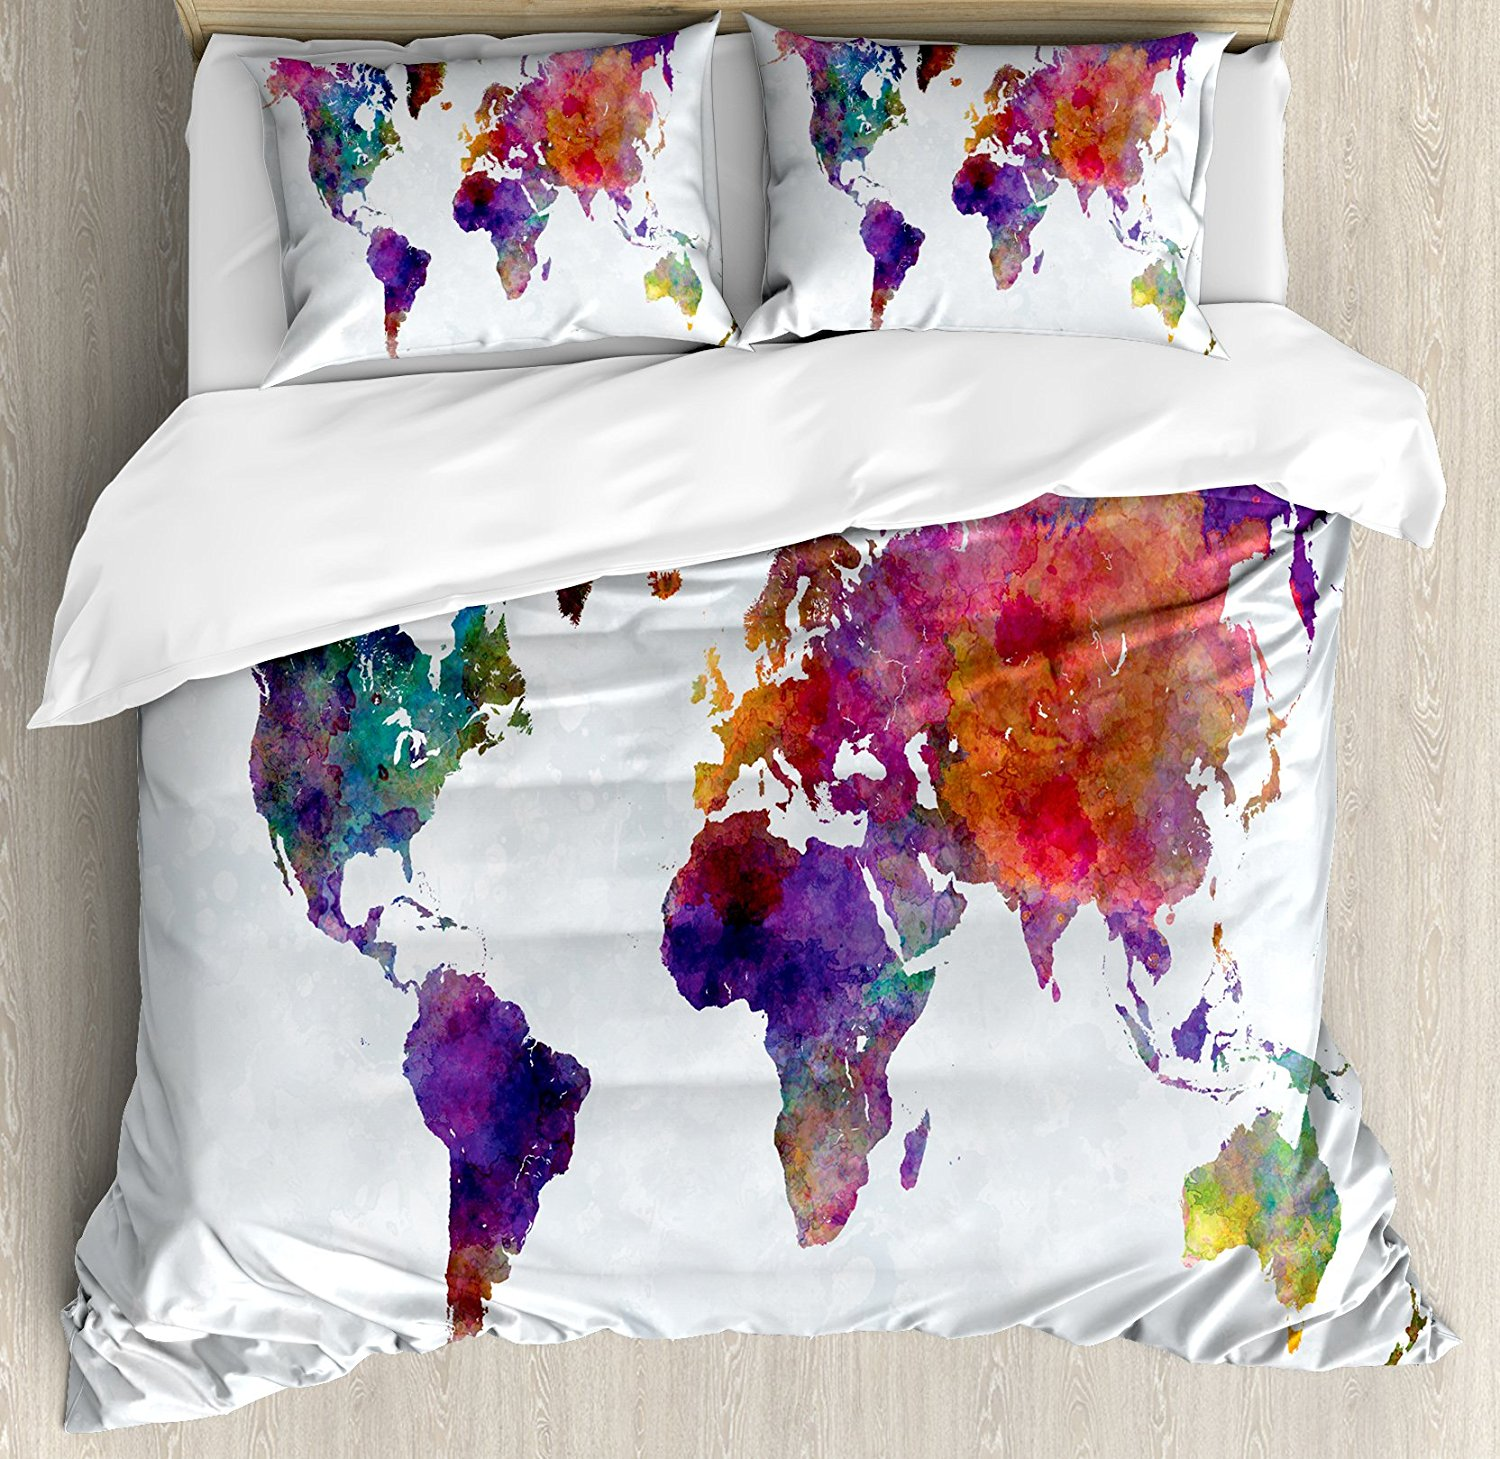 Watercolor duvet cover set multicolored hand drawn world map asia watercolor duvet cover set multicolored hand drawn world map asia europe africa america geography print multicolor in bedding sets from home garden on gumiabroncs Gallery